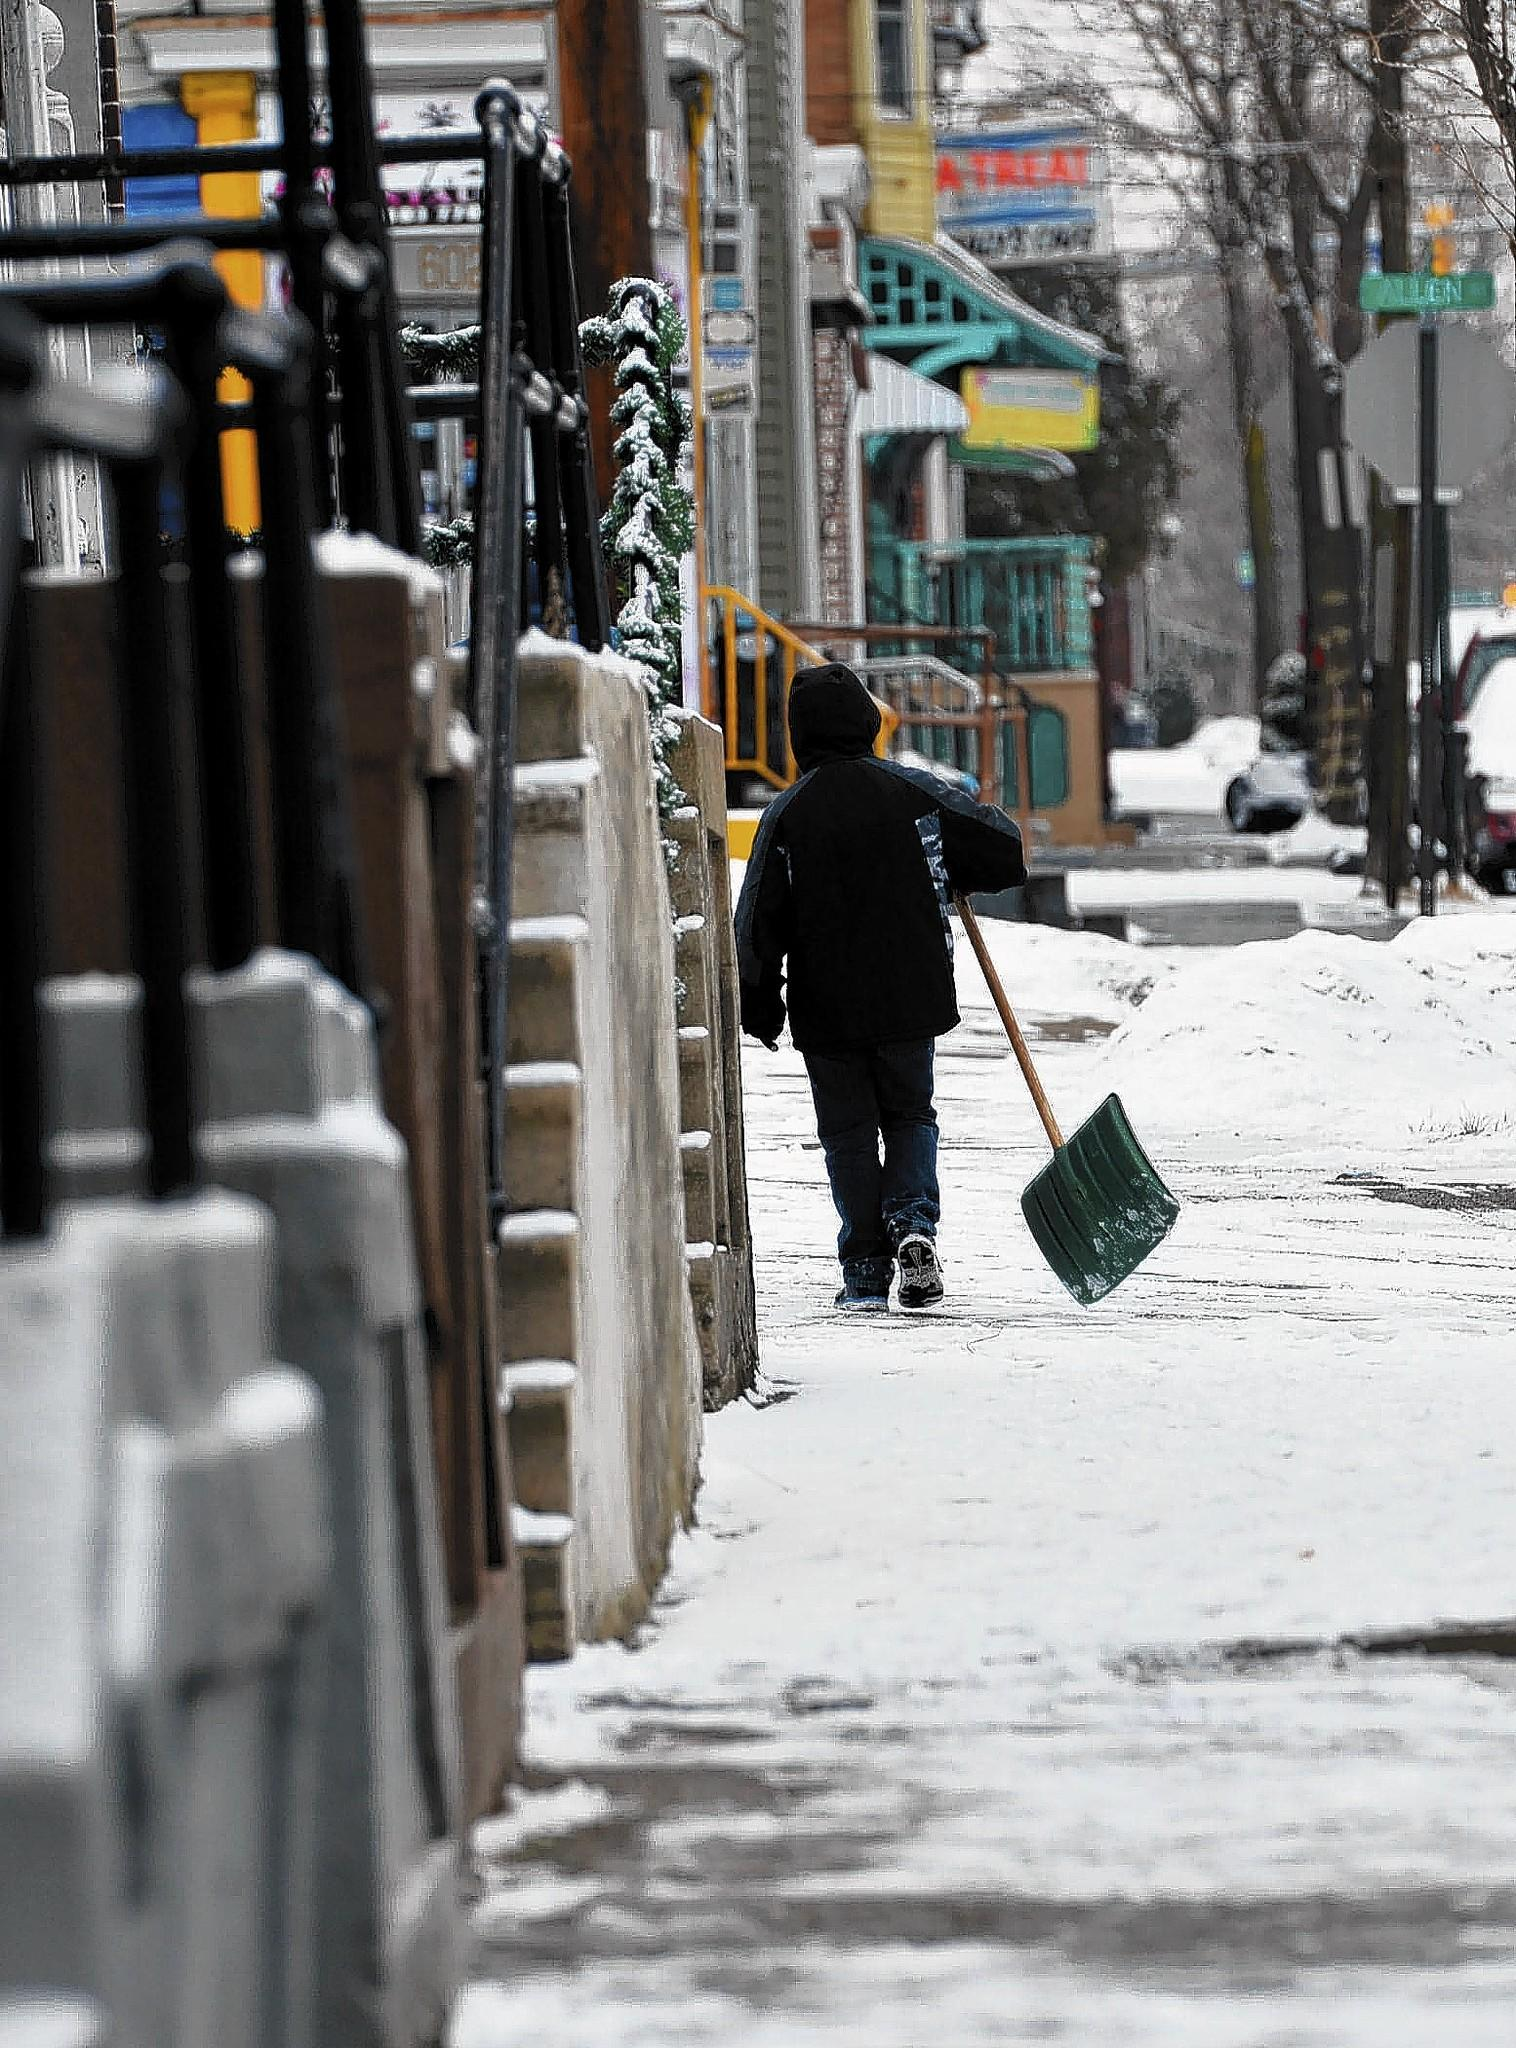 Most Lehigh Valley municipalities give residents 24 hours to shovel walkways, and while most comply, there are always some who need a push.